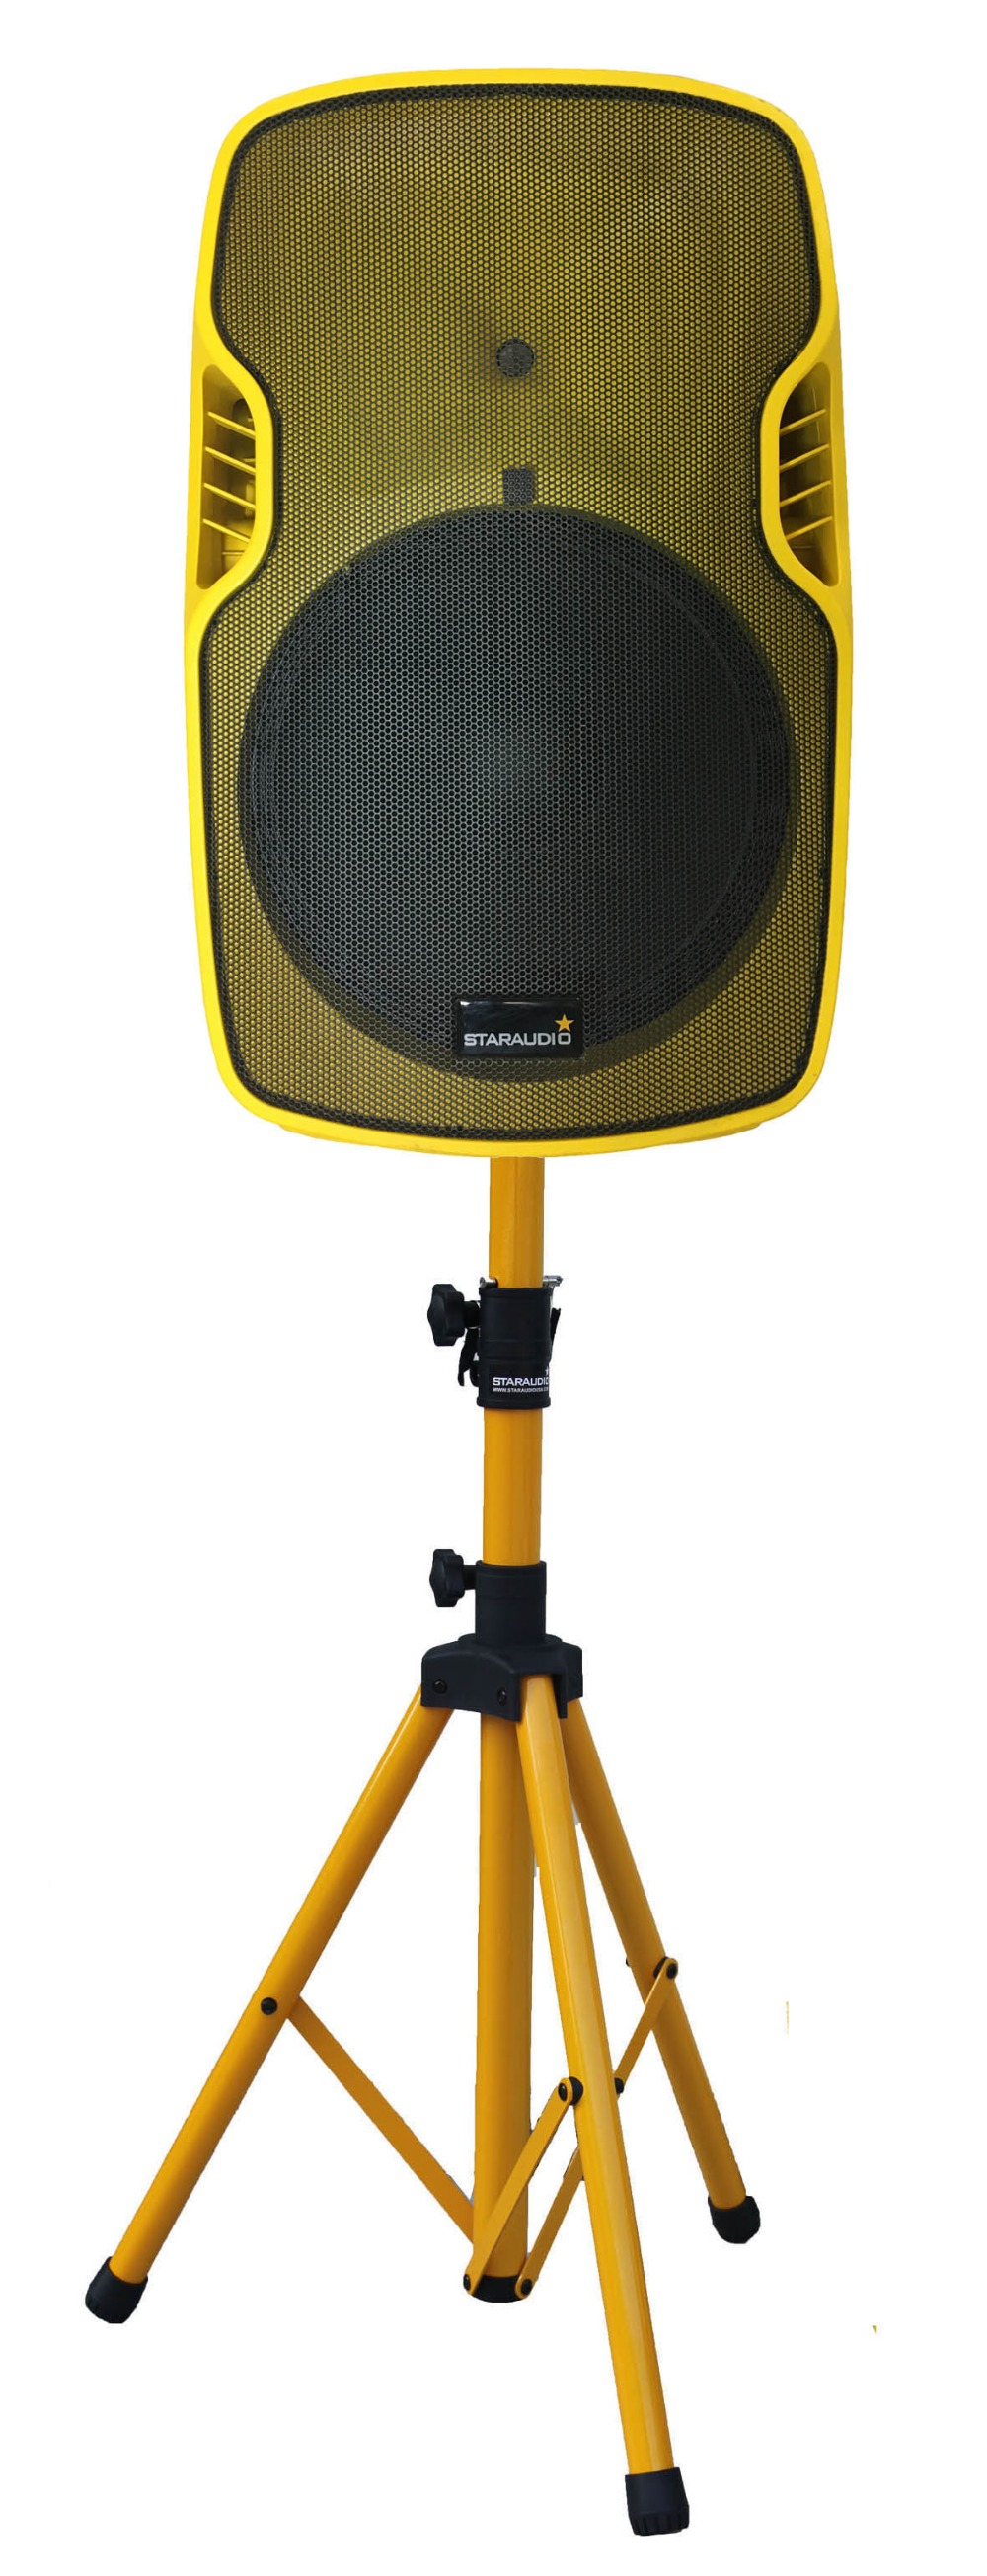 15 inch powered pa dj stage yellow speaker usb bluetooth audio party stage speaker with speaker stands